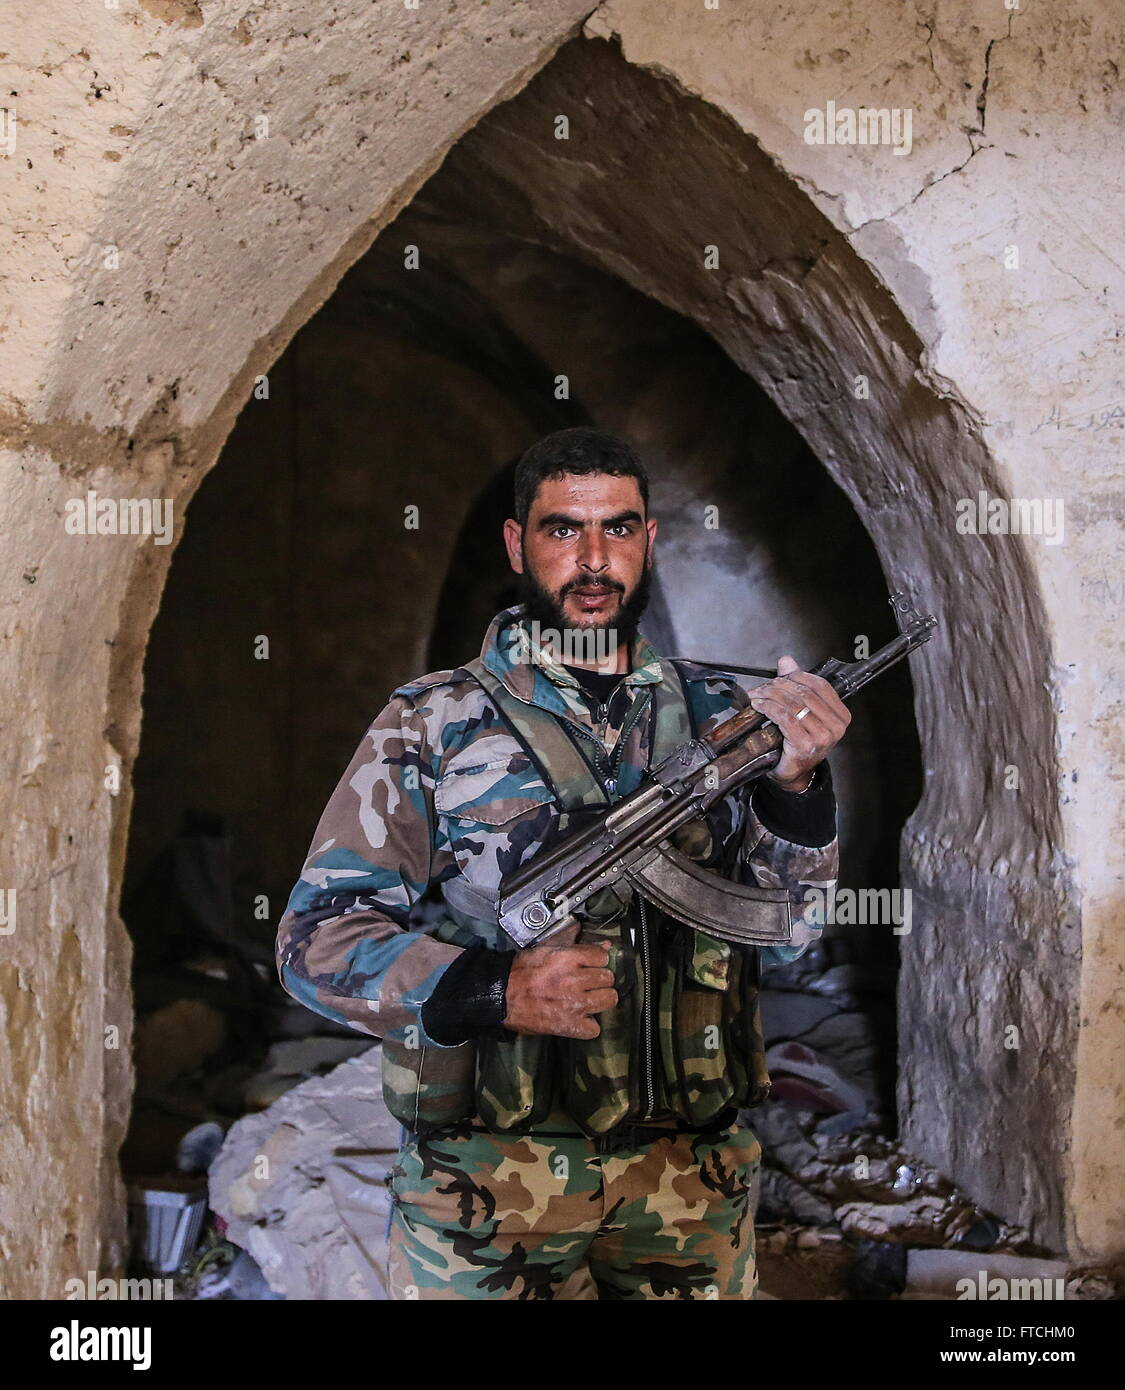 Palmyria, Syria. 26th Mar, 2016. A Syrian government army soldier in Fakhr al-Din al-Maani Citadel in Palmyra, a - Stock Image